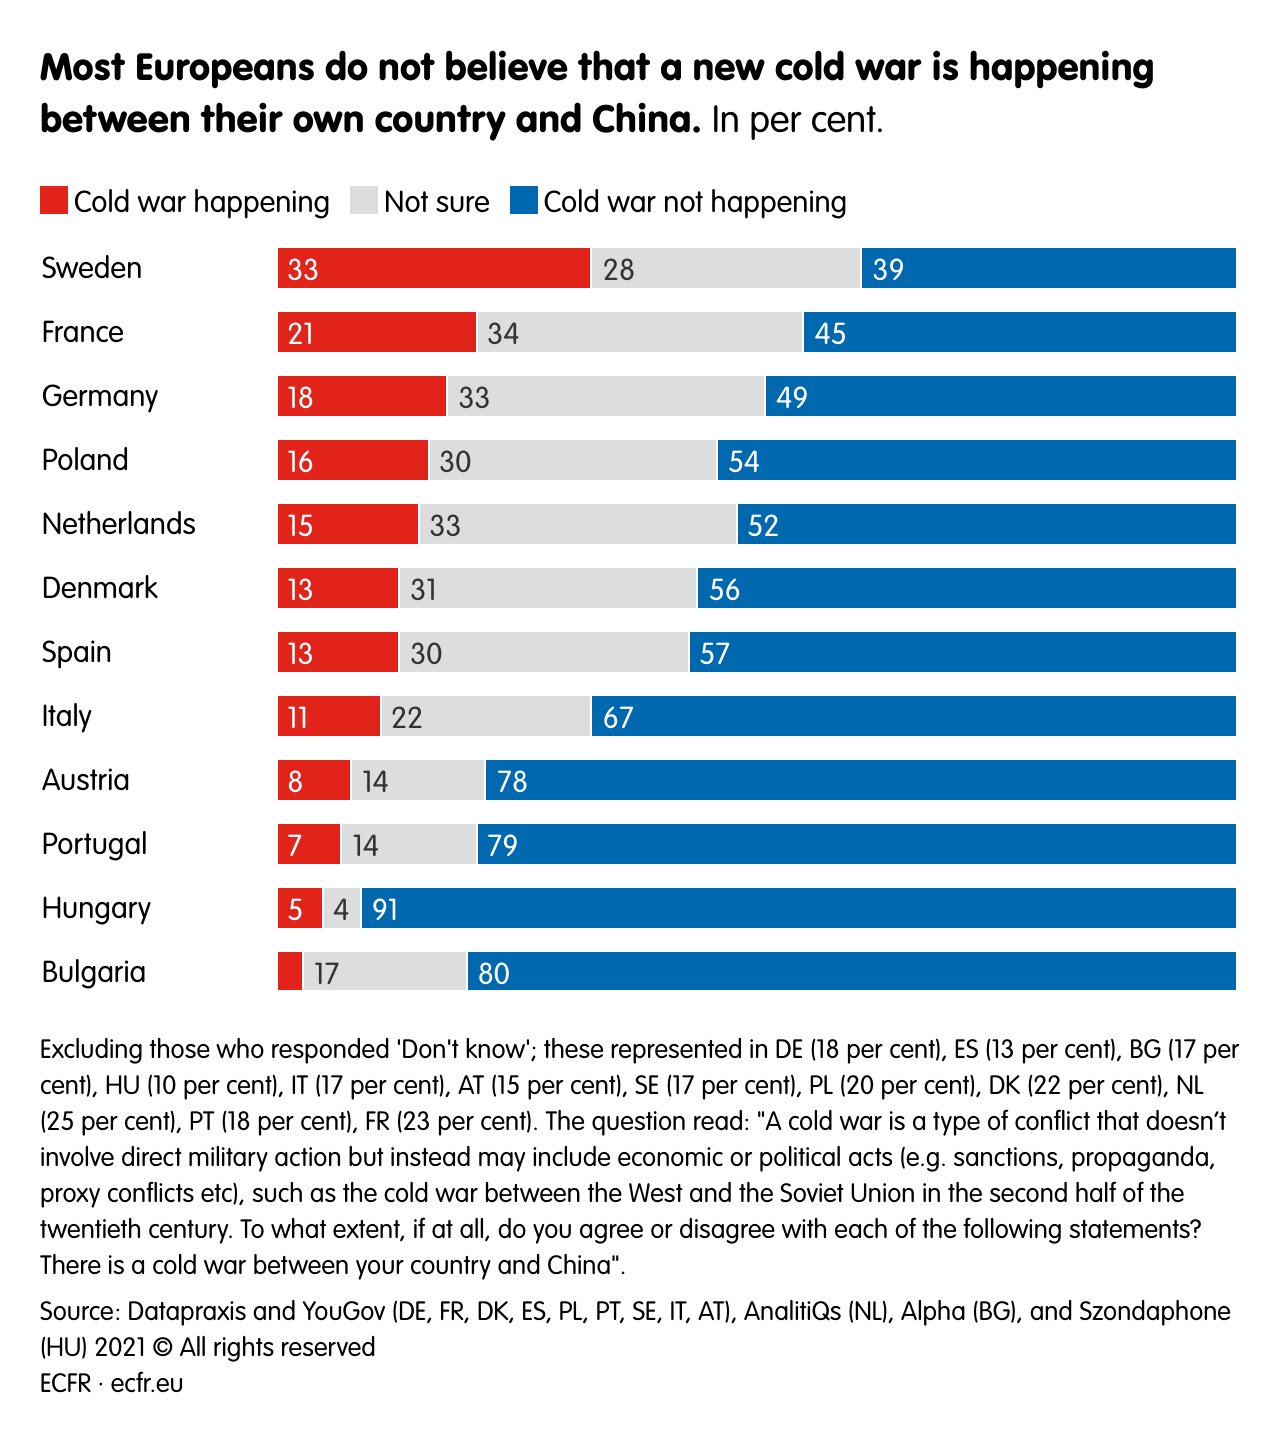 Most Europeans do not believe that a new cold war is happening between their own country and China.